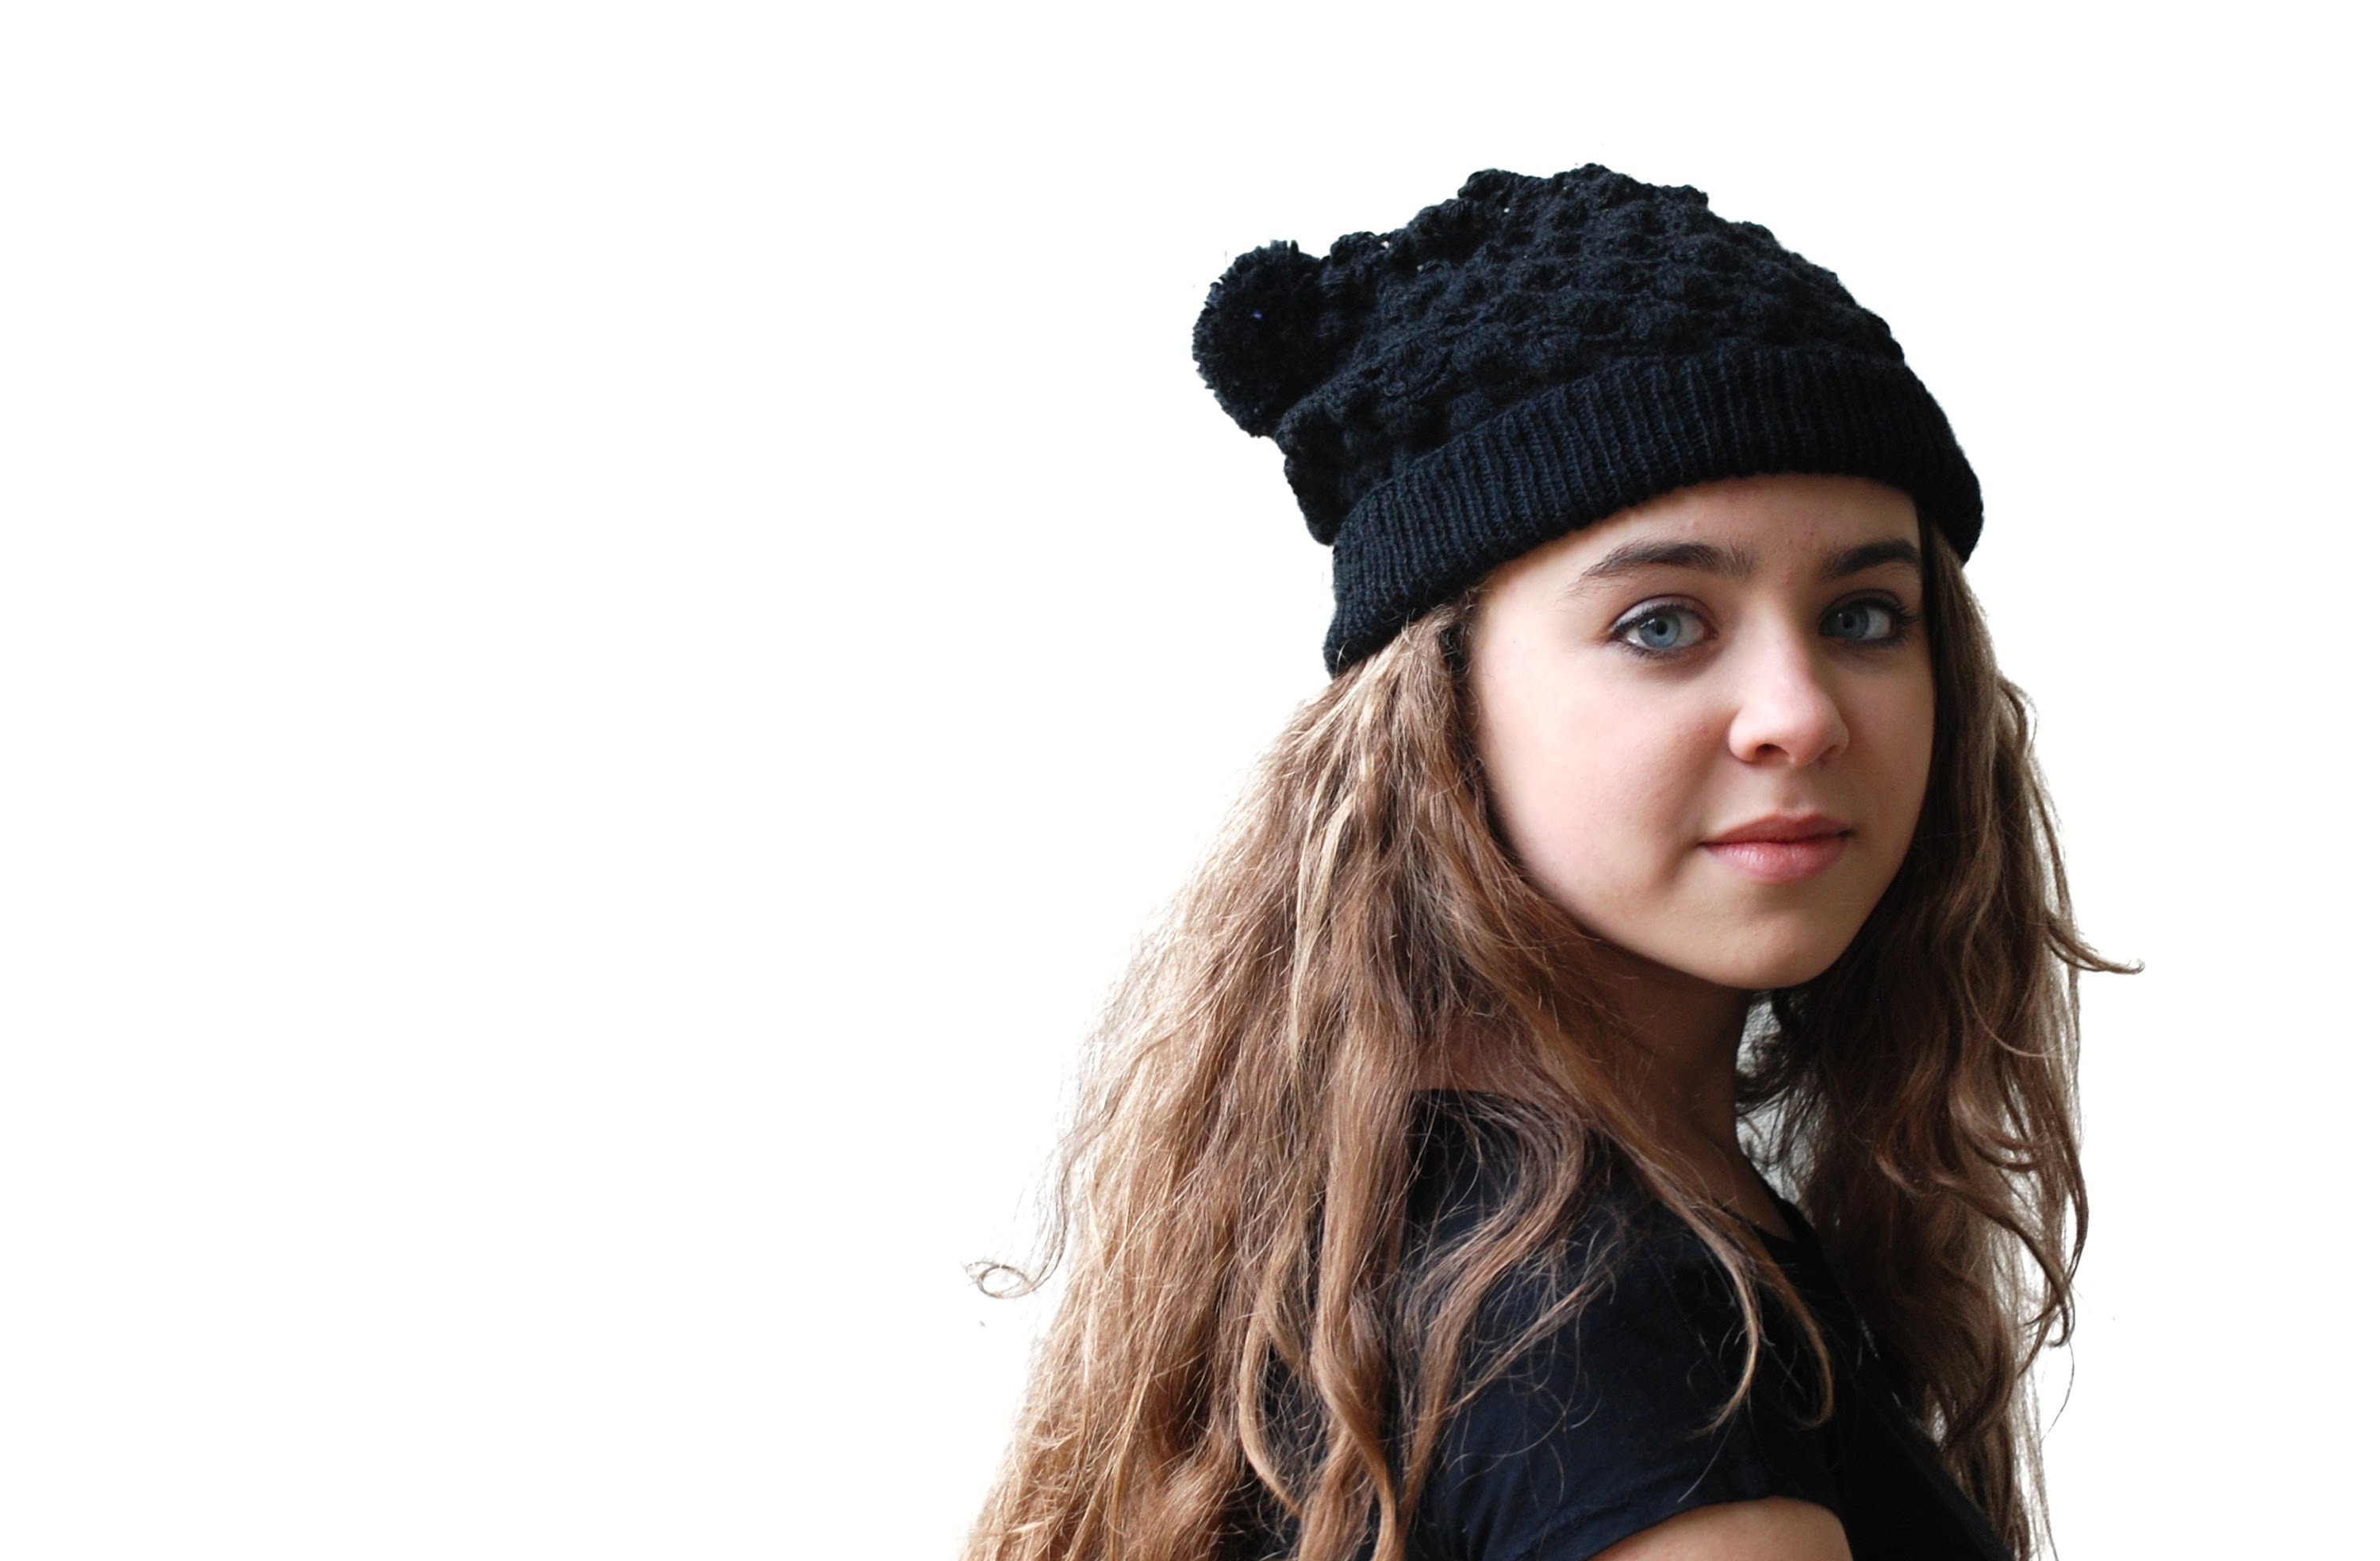 PINEAPPLE STITCH BEANIE   An original design and stitch combination by The Casting On Couch